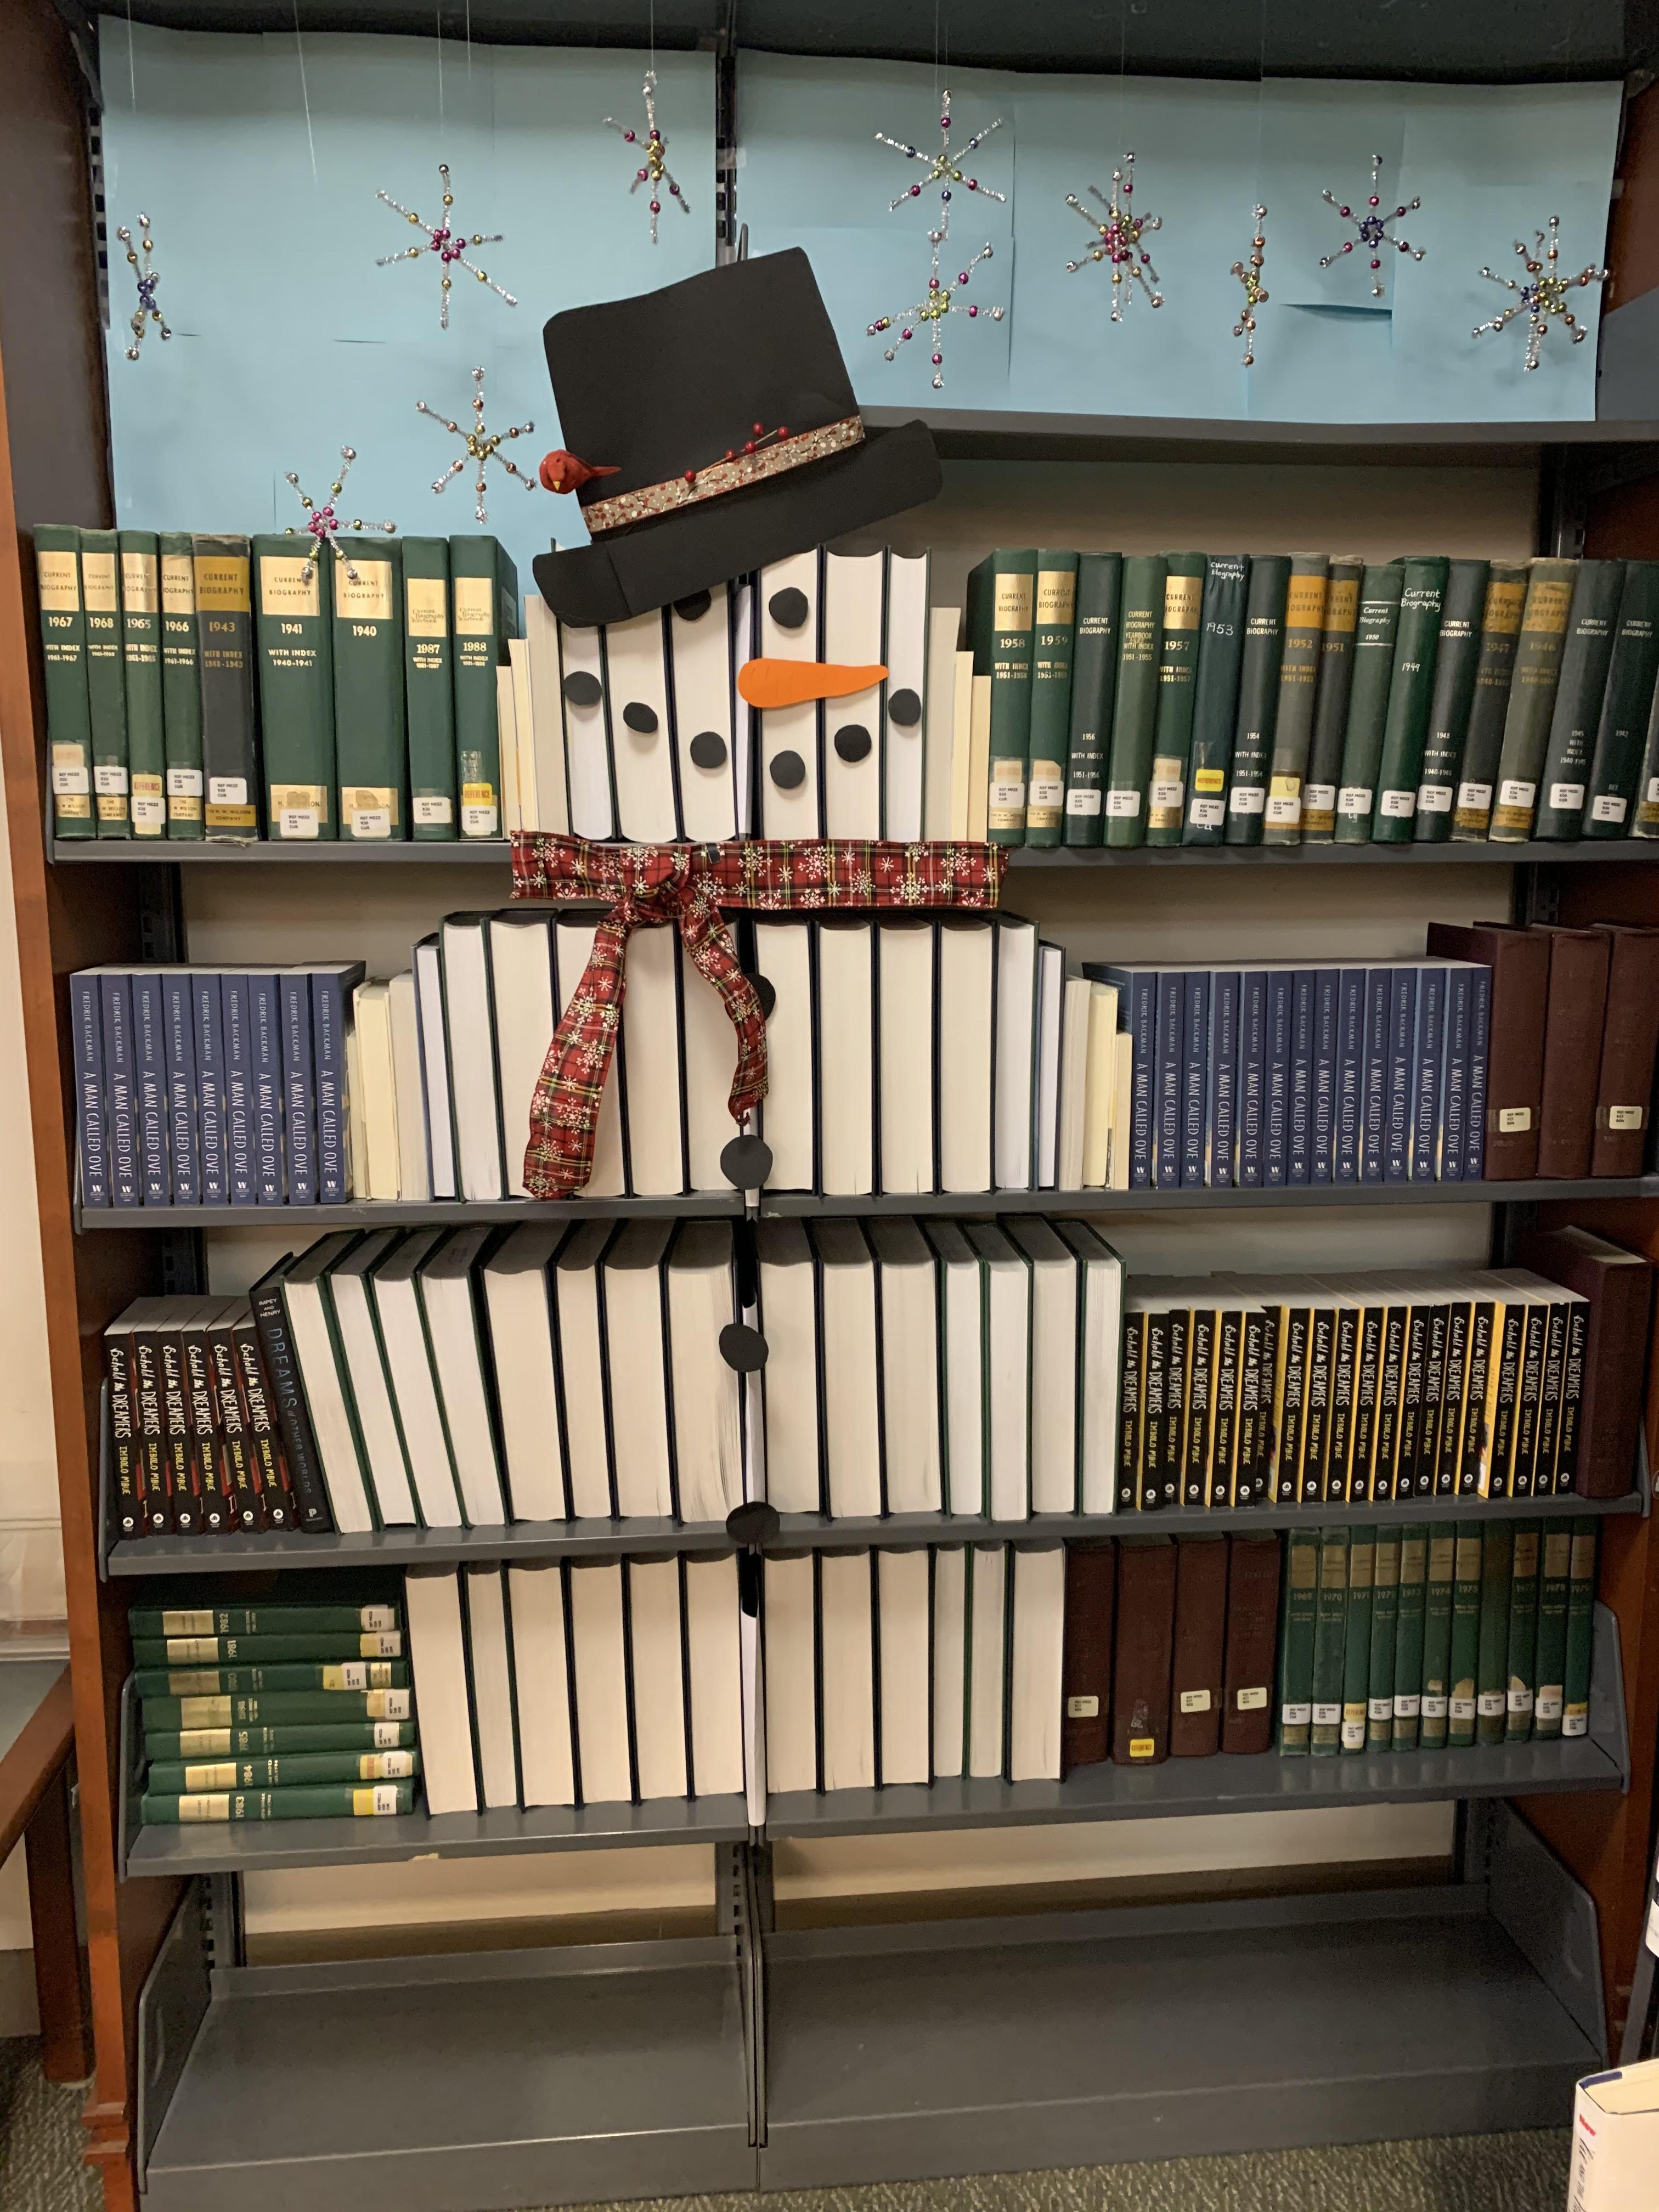 Local library made this snowman out of books